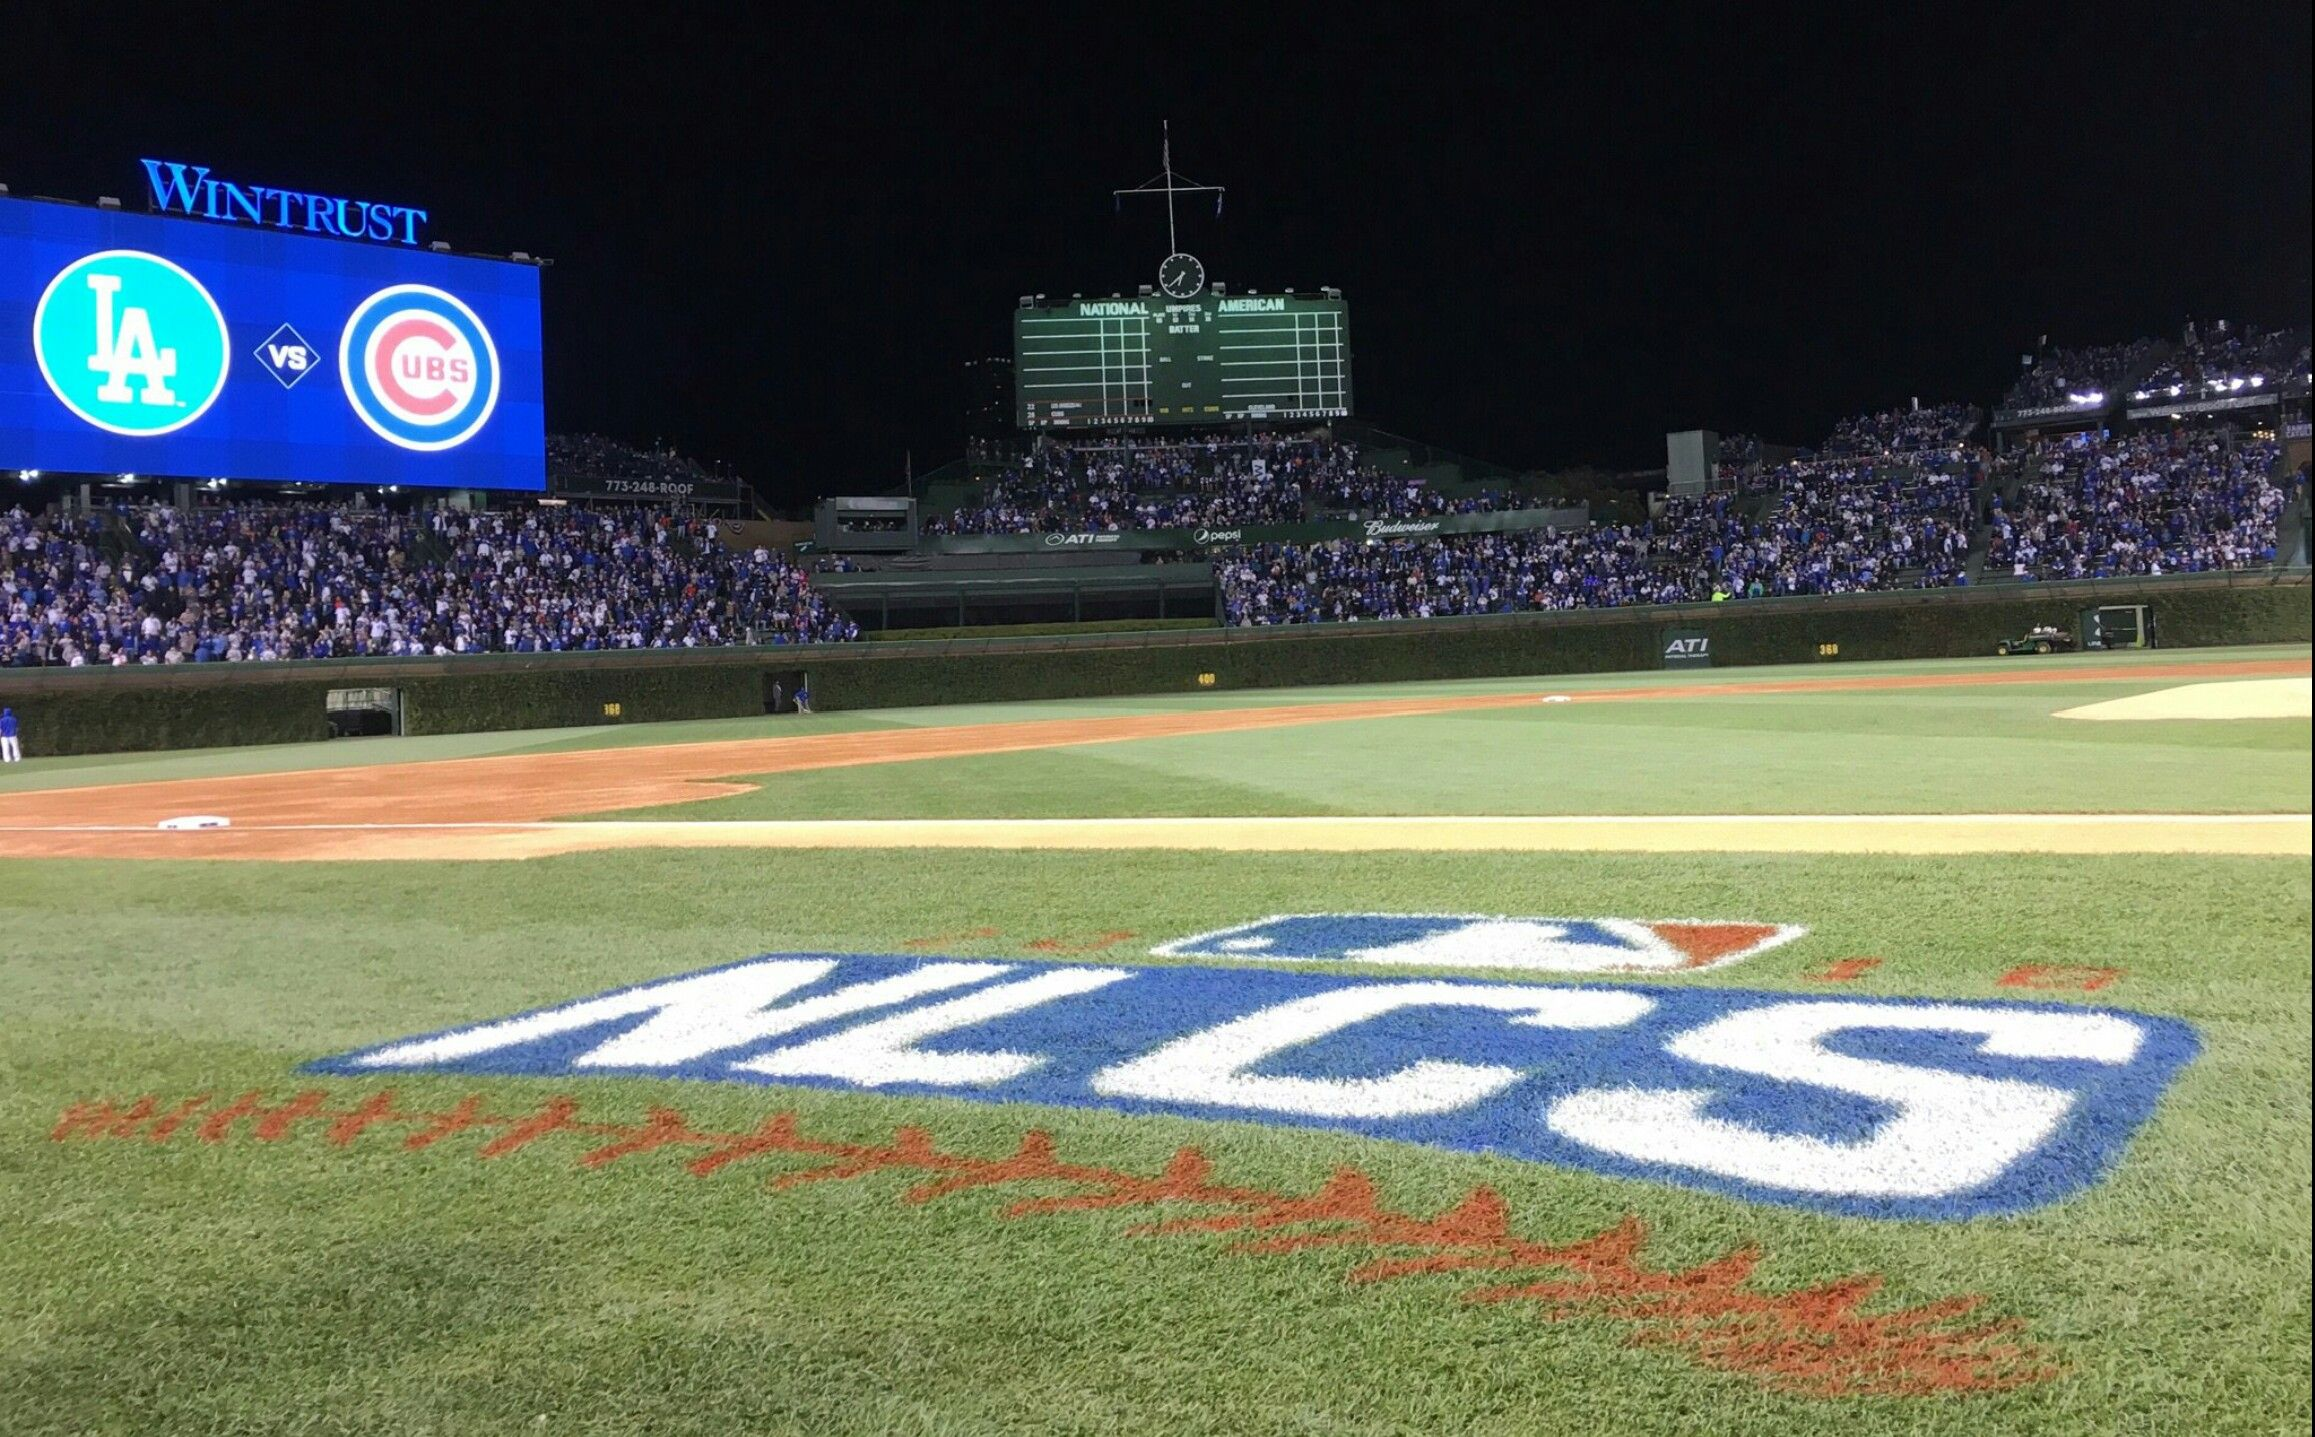 ✊💀✊ Chicago Cubs October 22nd 2016 National League Champions - 17th Franchise Pennant - Next: WORLD SERIES - Chicago Cubs Defeating the Los Angeles Dodgers 5-0 in Game 6 of the 2016 NLCS!!